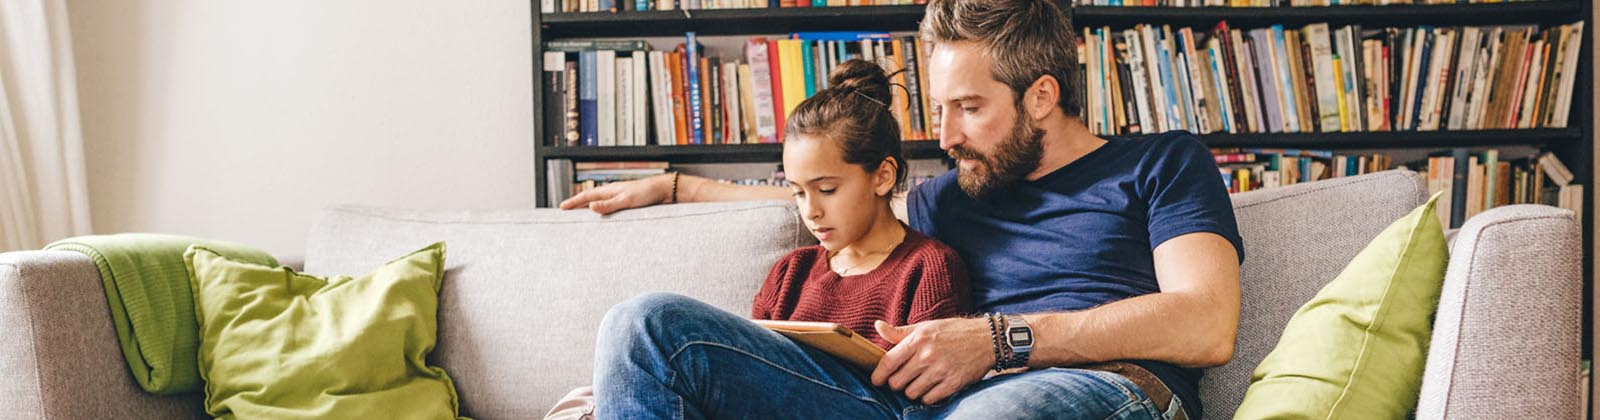 father and daughter reading on a couch together